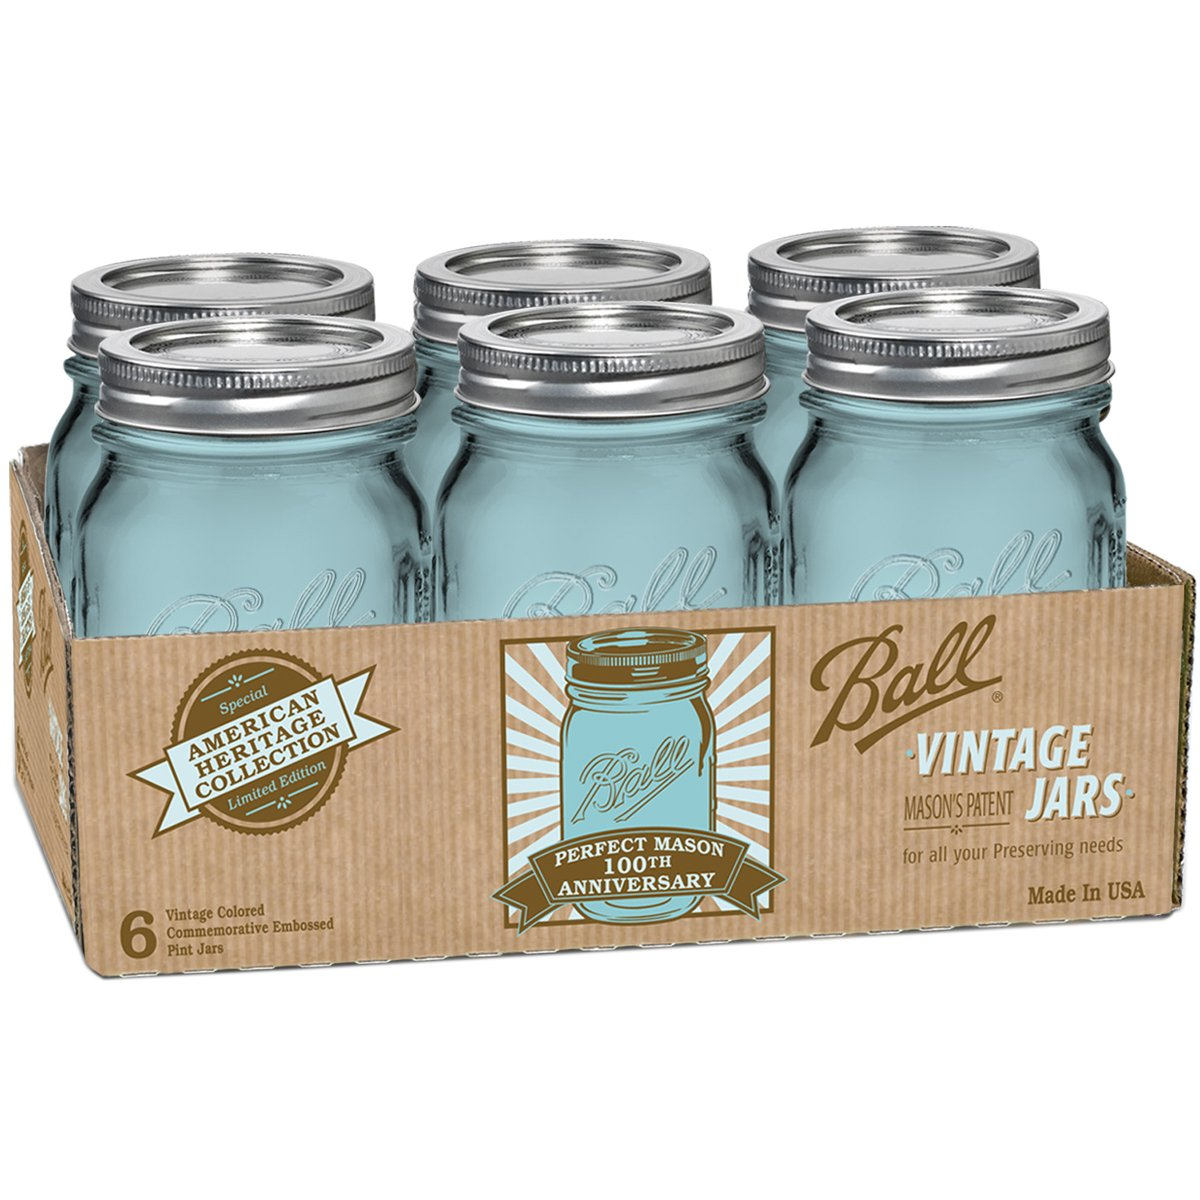 Amazon.com: Ball Jar Heritage Collection Pint Jars with Lids and ...